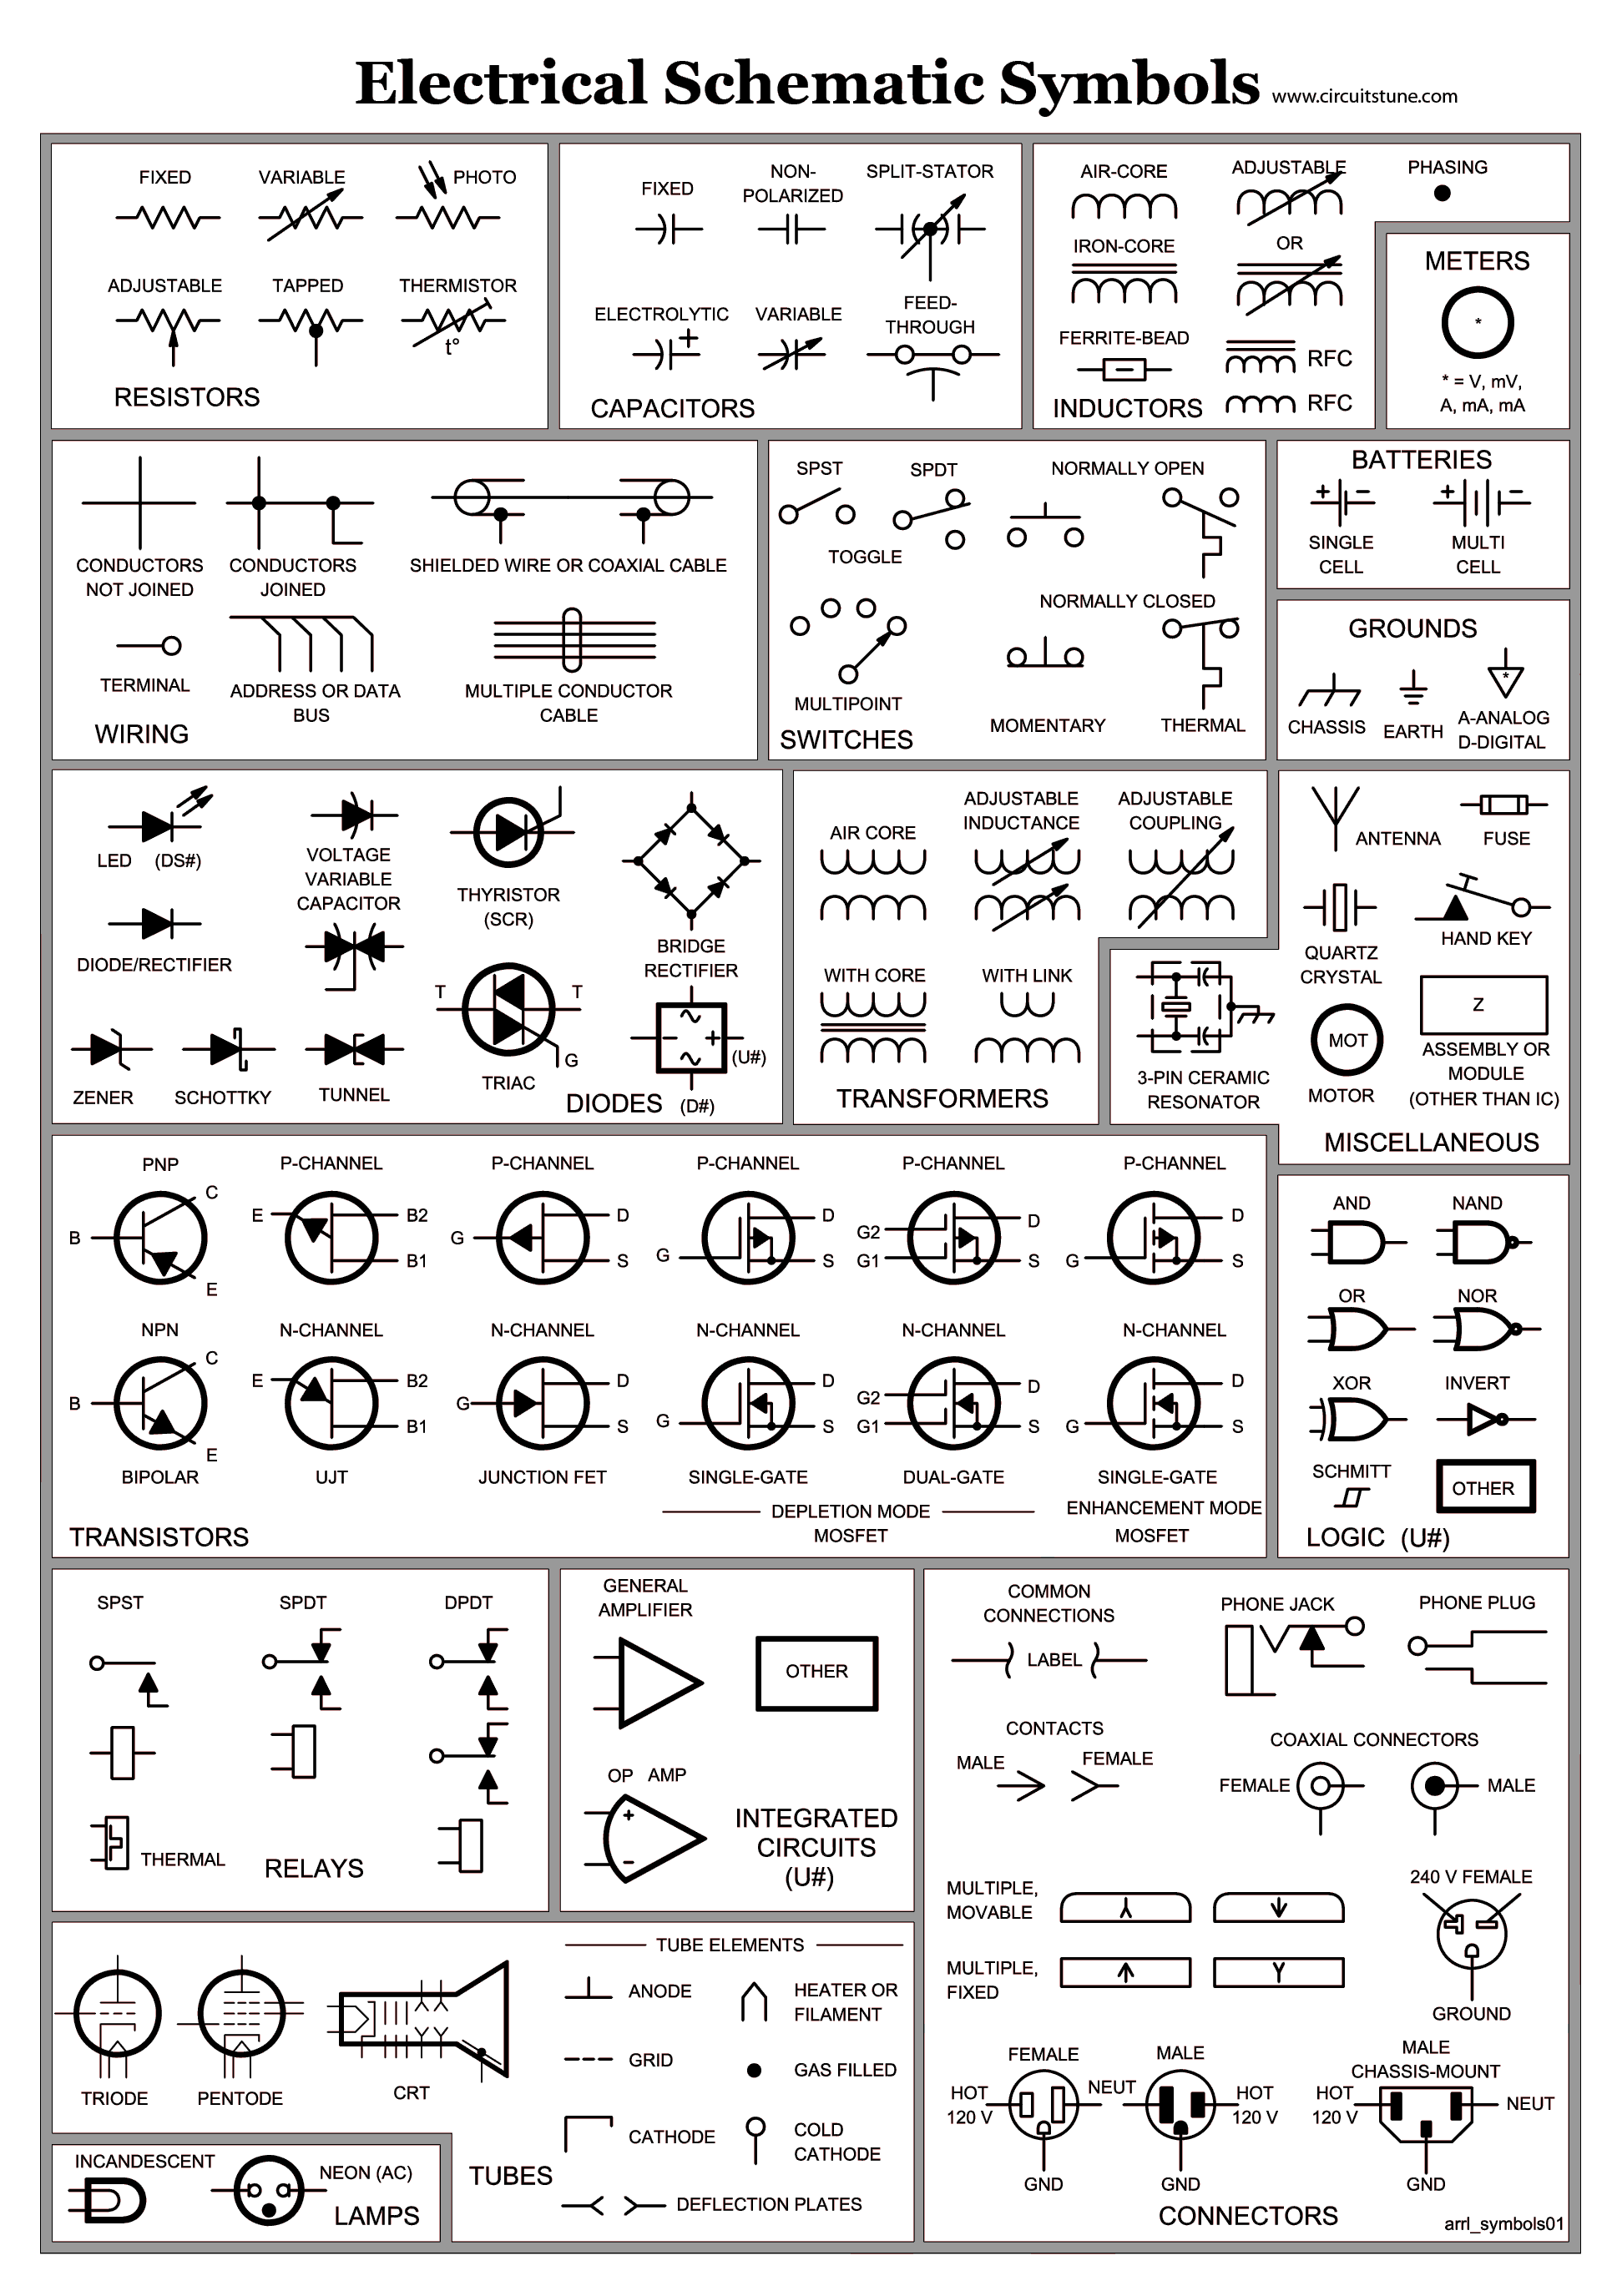 electrical schematic symbols wire diagram symbols automotive wiring rh pinterest com automotive wiring schematic symbols automotive electrical symbols